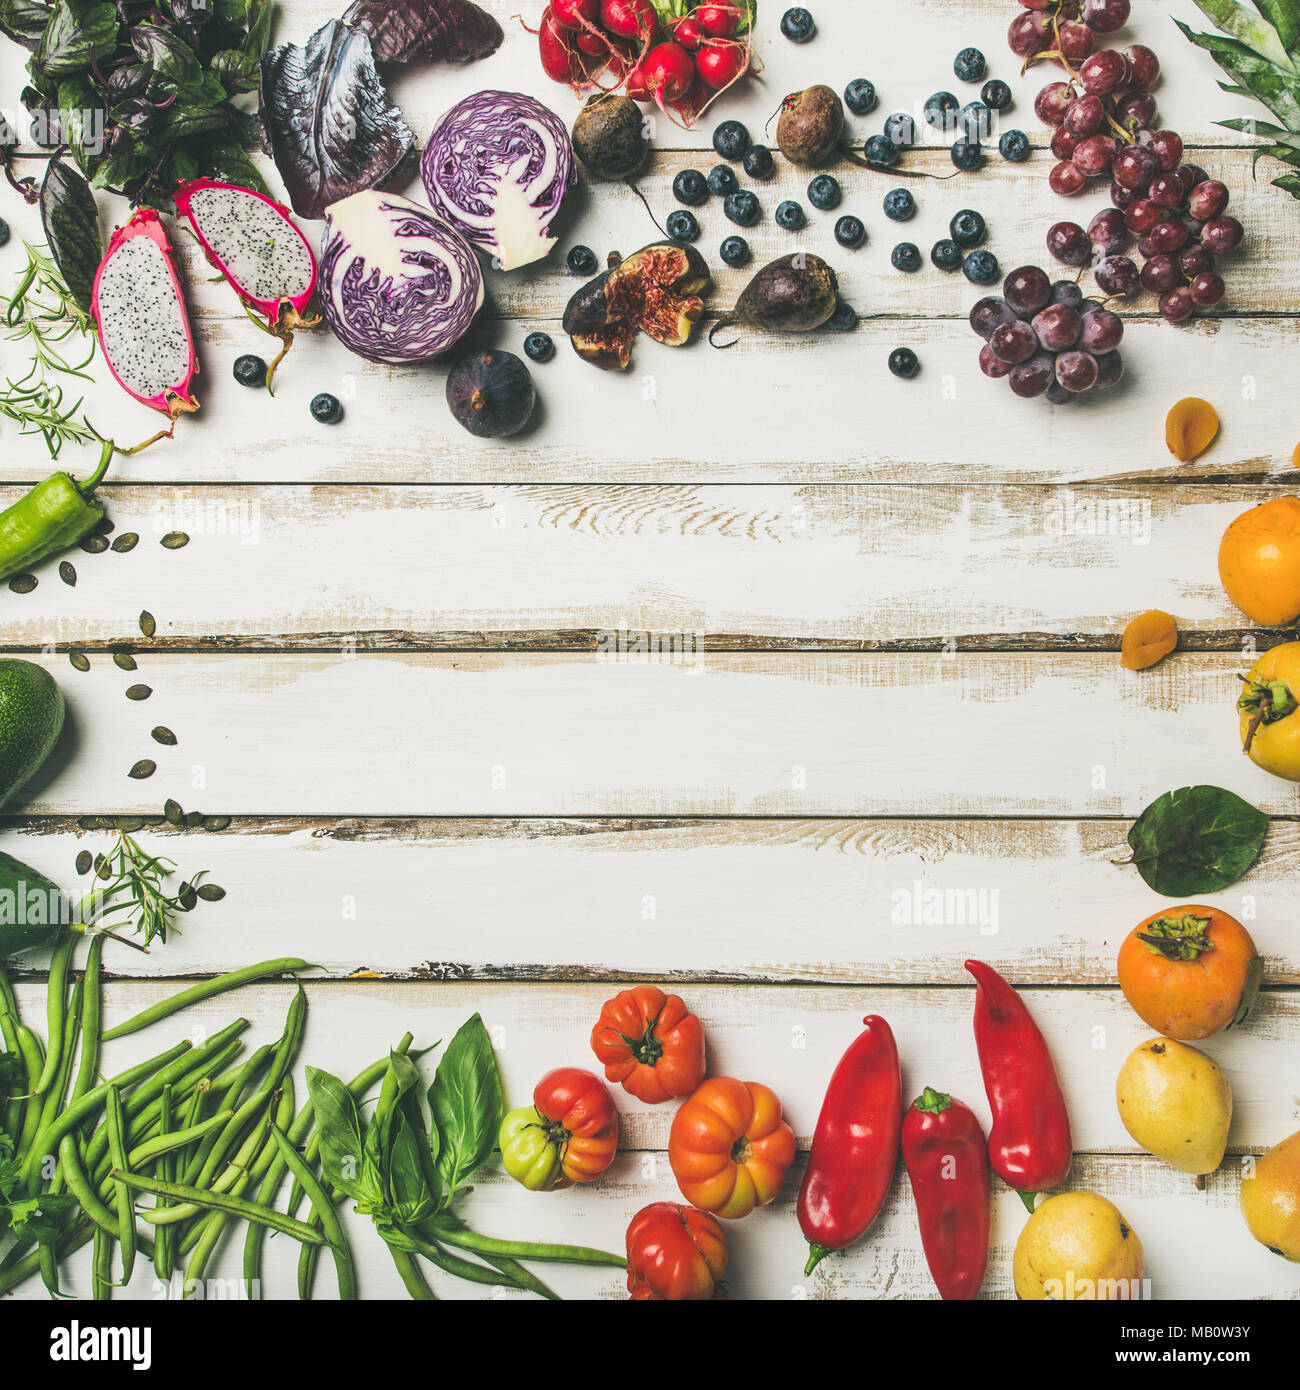 Flat-lay of fresh fruit, vegetables, greens and superfoods, square crop - Stock Image